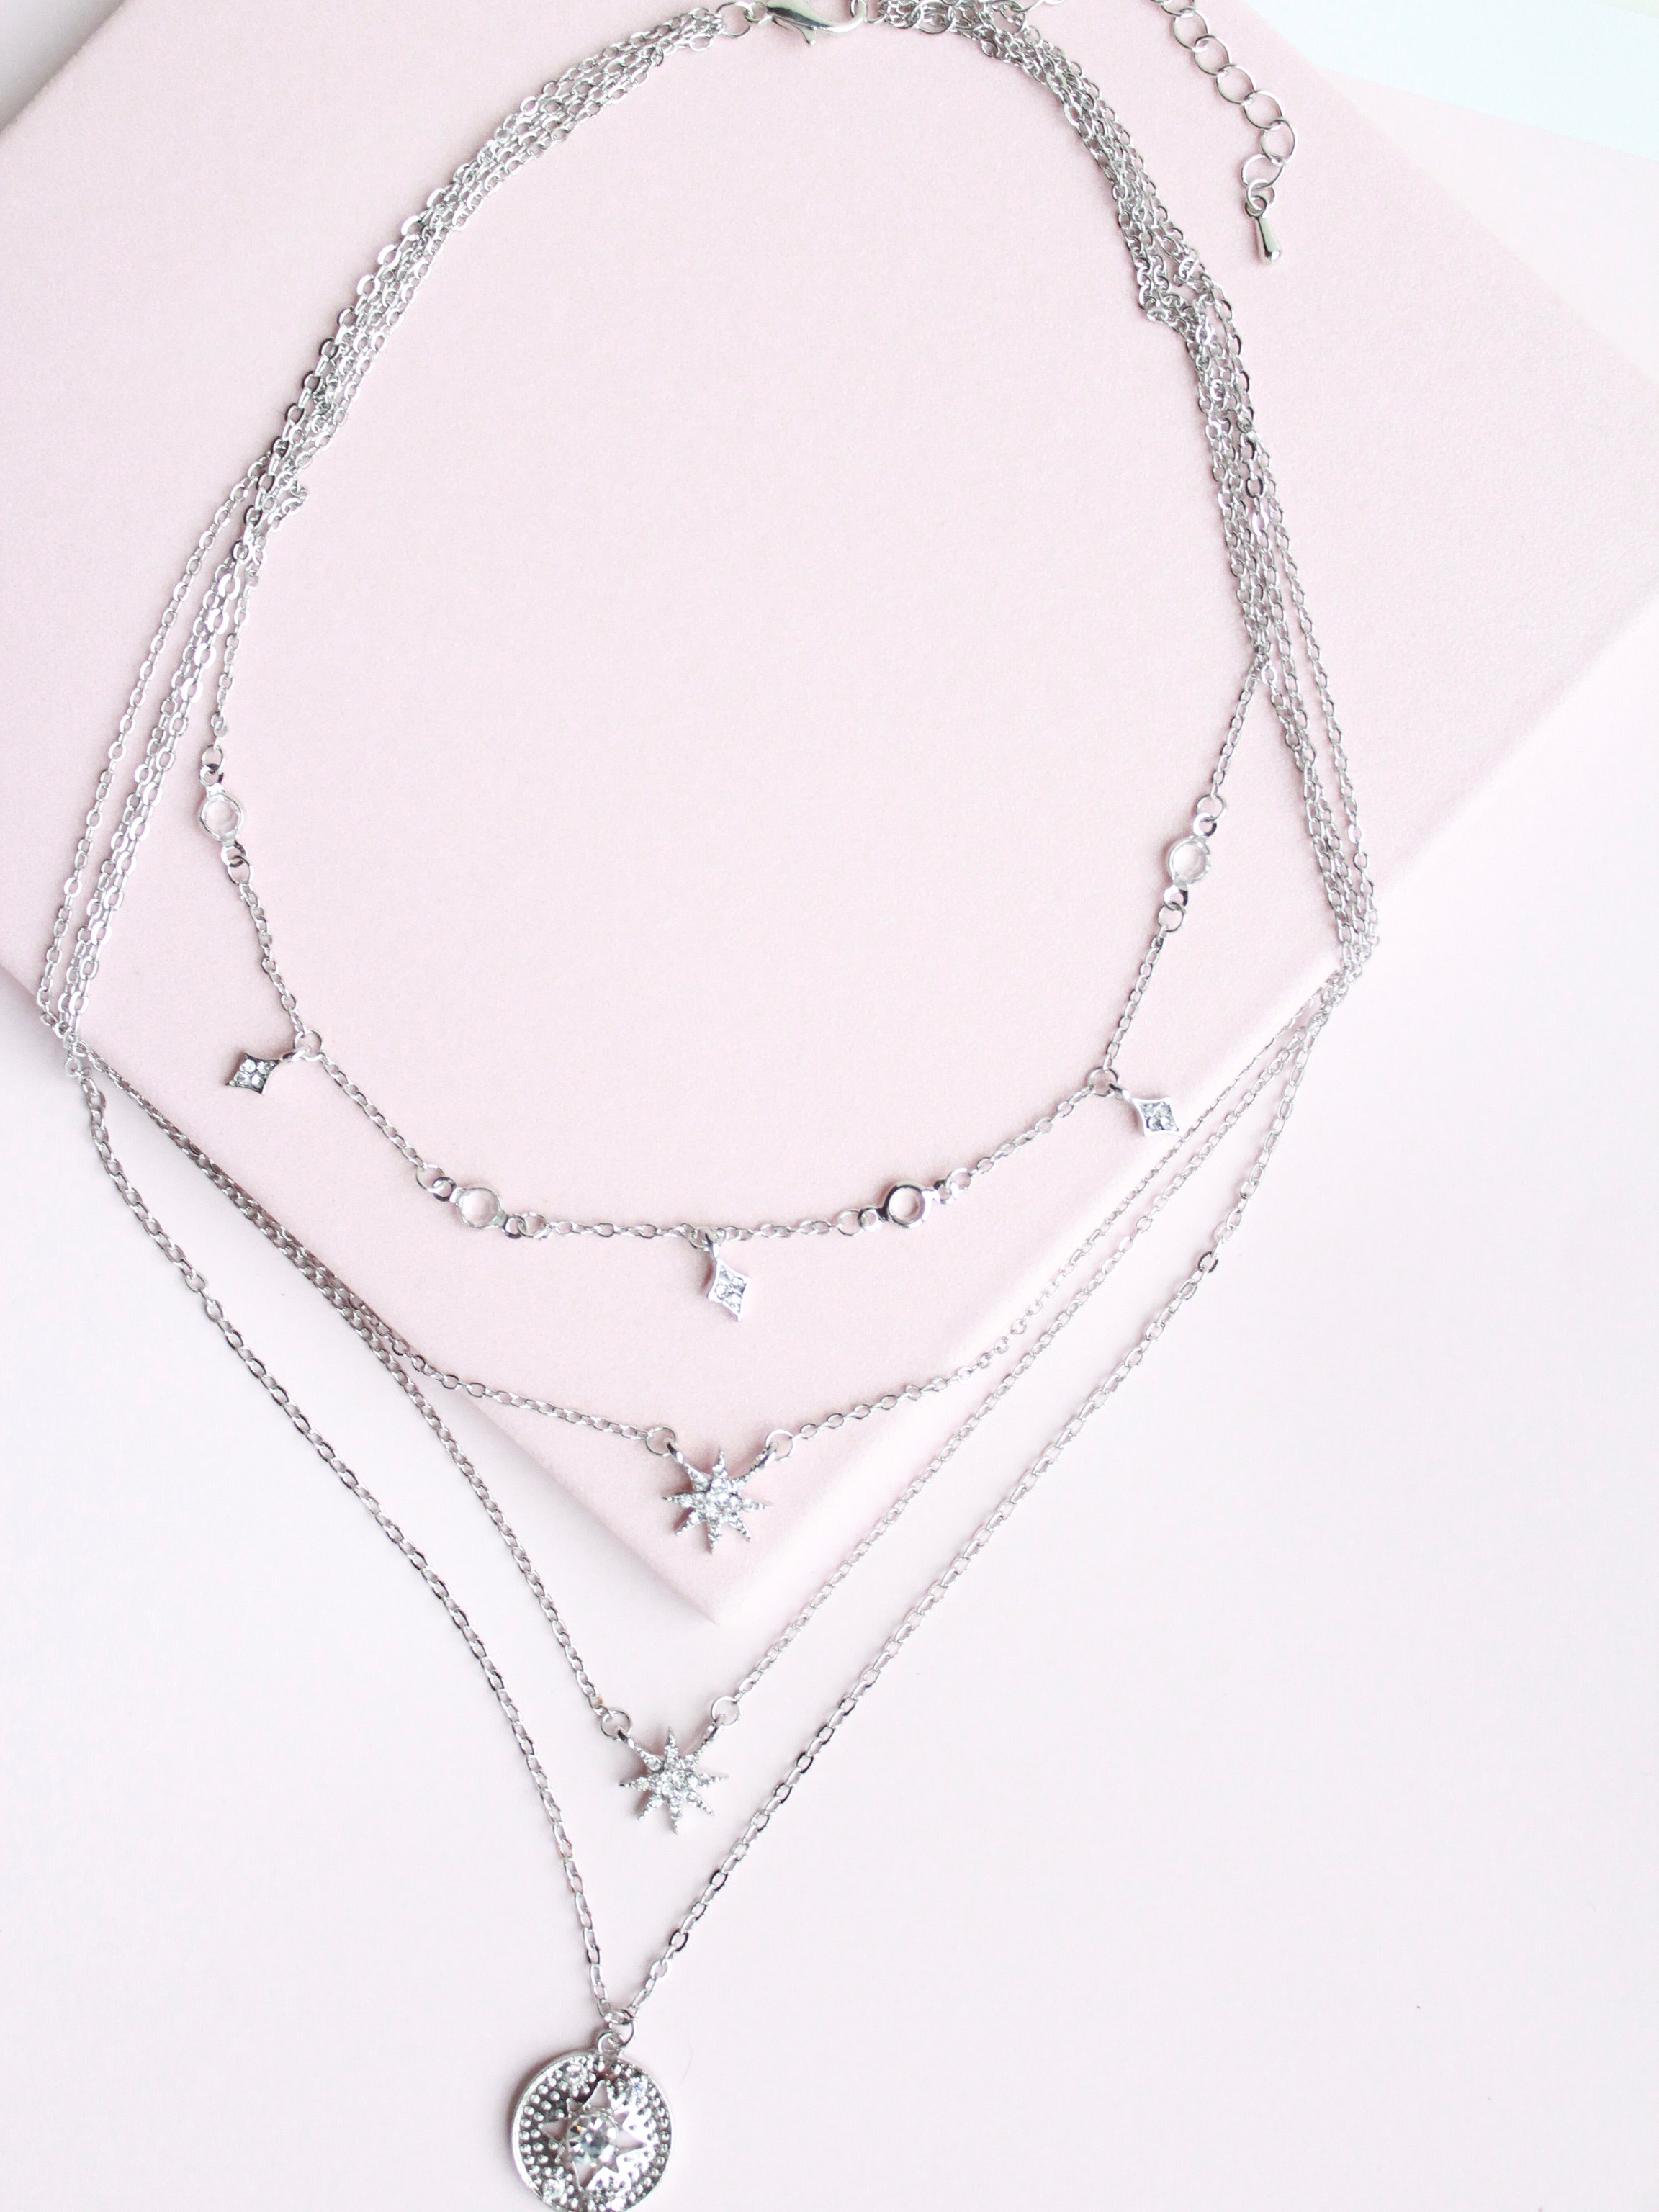 Evening Layer Necklace